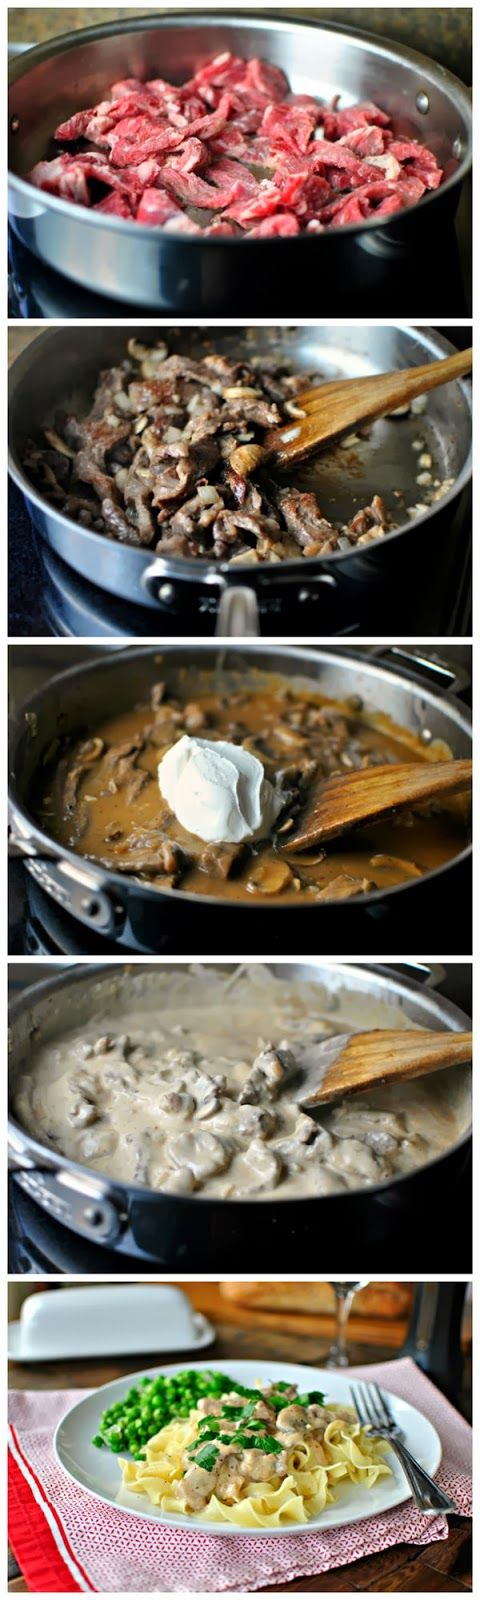 Beef Stroganoff.. Made this last night!! So easy and came out so GREAT!!!